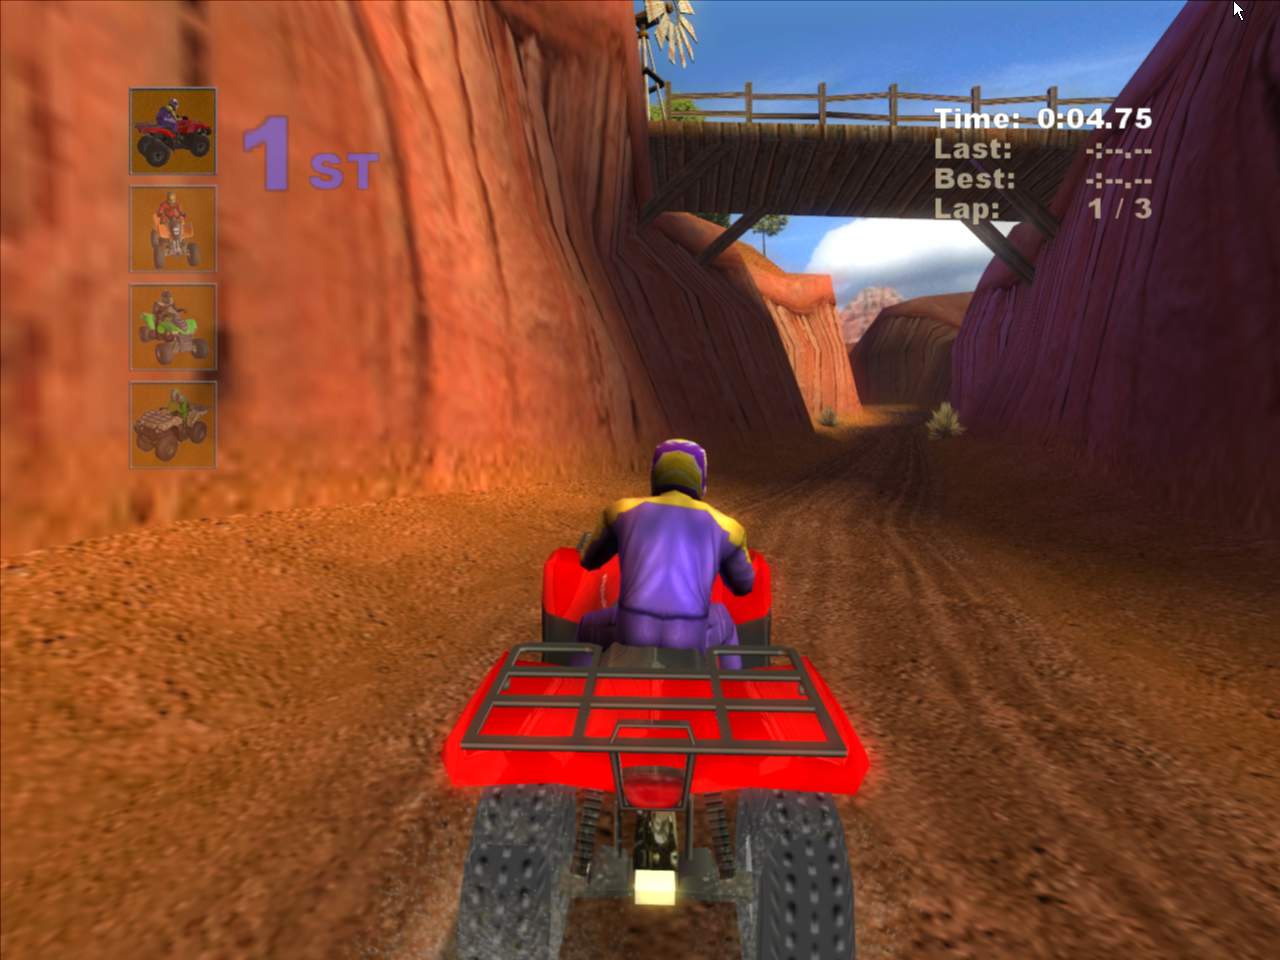 Kawasaki Quad Bikes Windows Going under the bridge in Red Rock. Unlike the other Kawasaki games released by Metro 3D , this one has lots of detail in the levels.